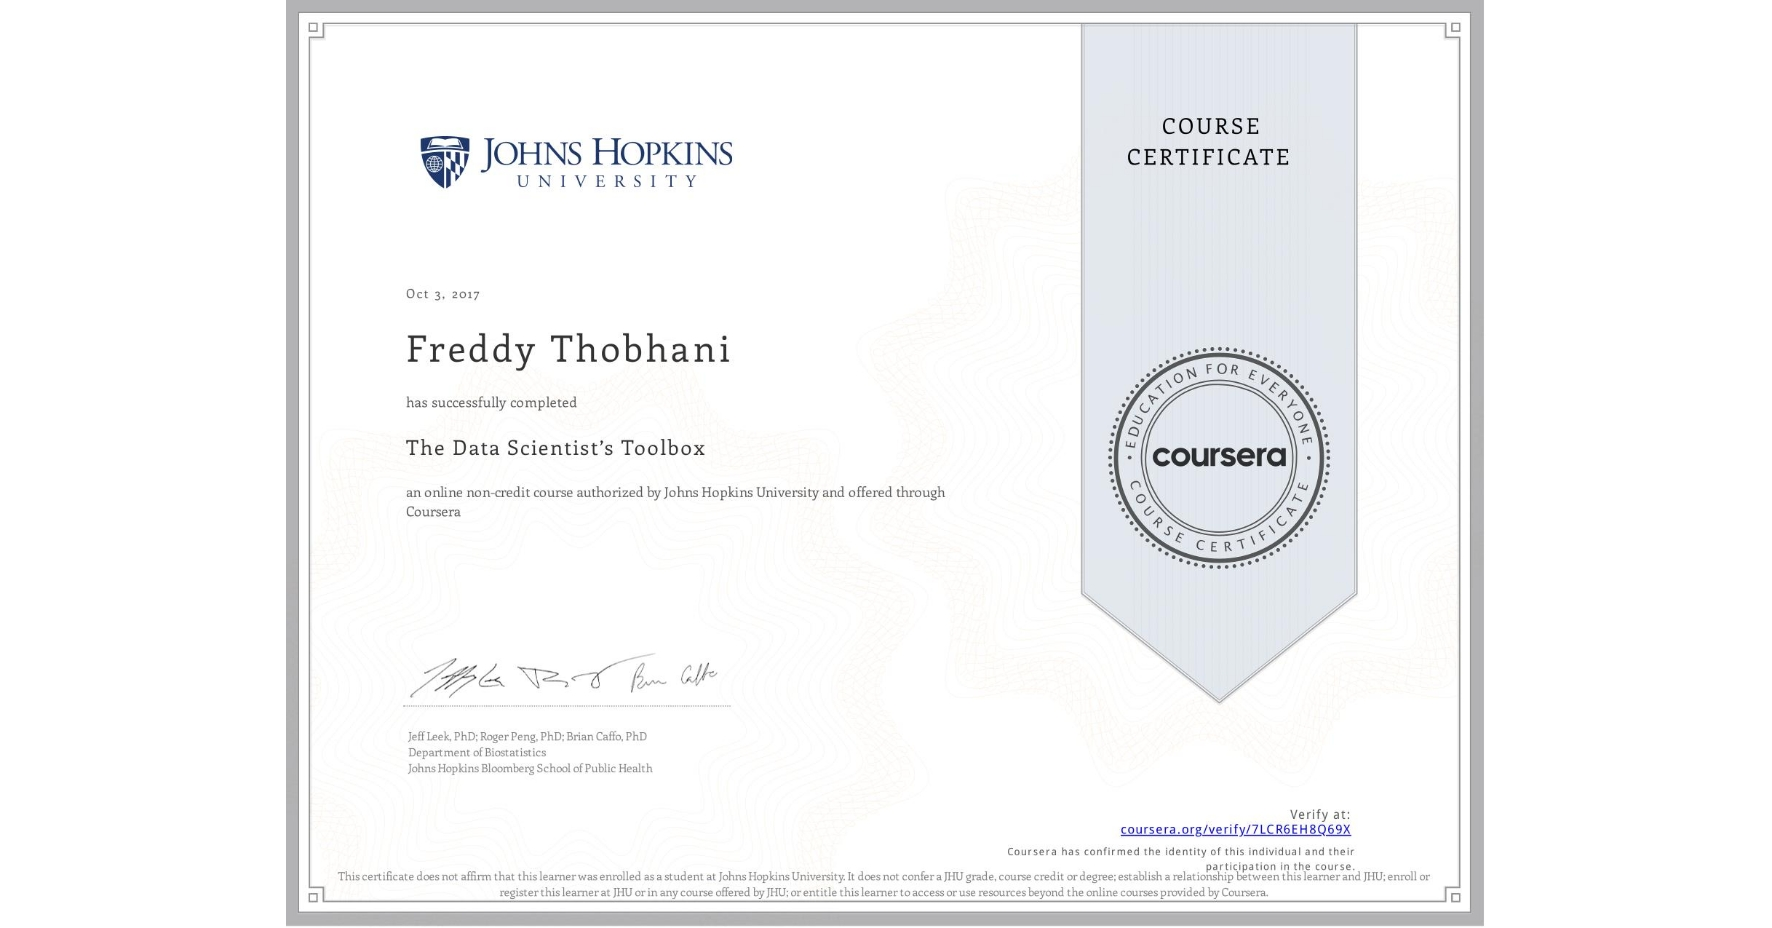 View certificate for Freddy Thobhani, The Data Scientist's Toolbox, an online non-credit course authorized by Johns Hopkins University and offered through Coursera